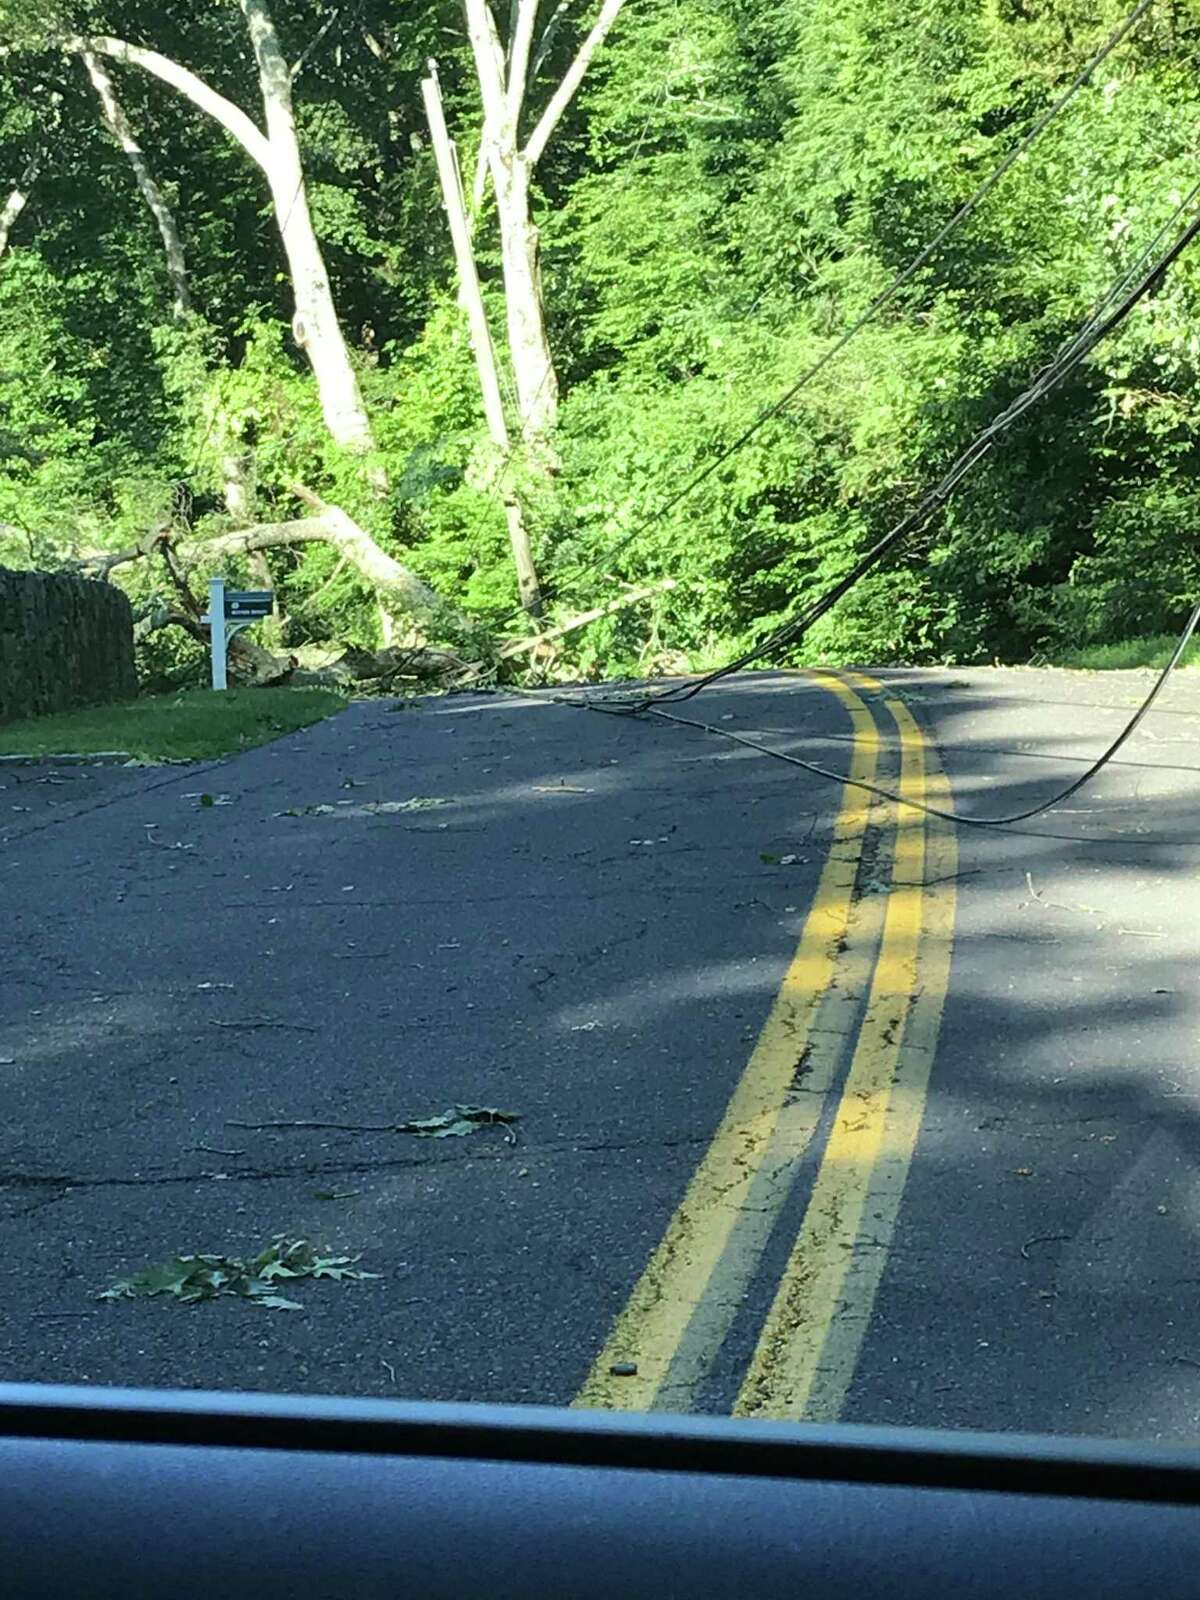 An area of River Road blocked by tress on power lines. Taken at 11 a.m. in Weston, CT.